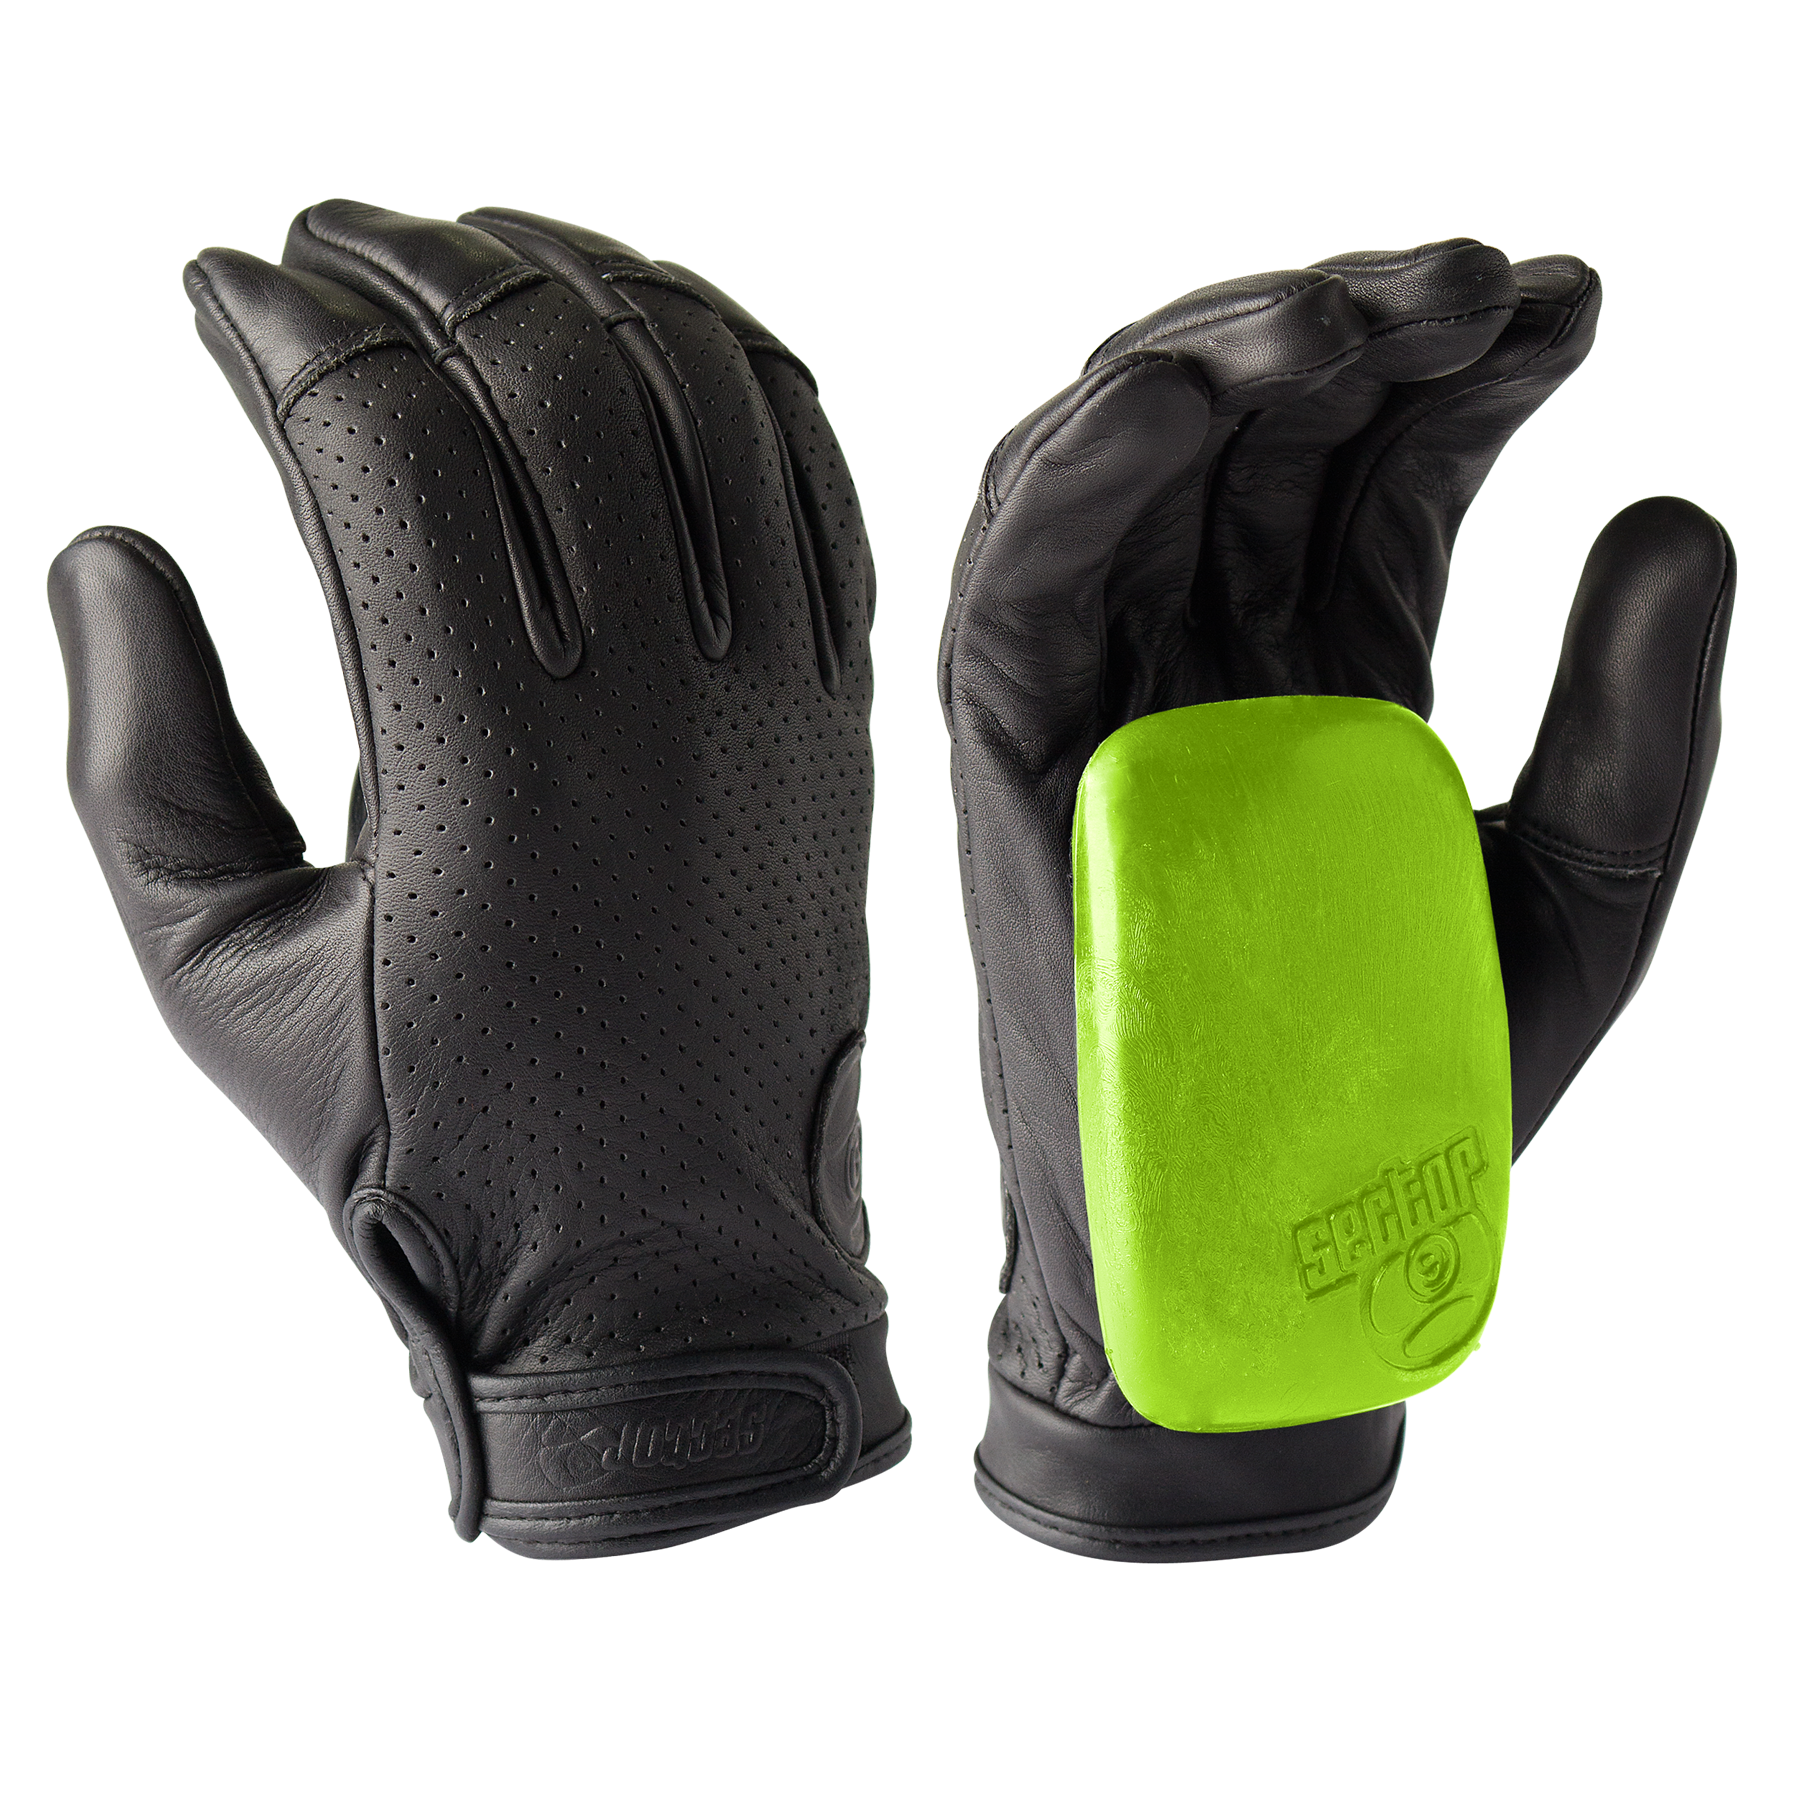 Buy sector 9 driver slide gloves at the longboard shop in the.